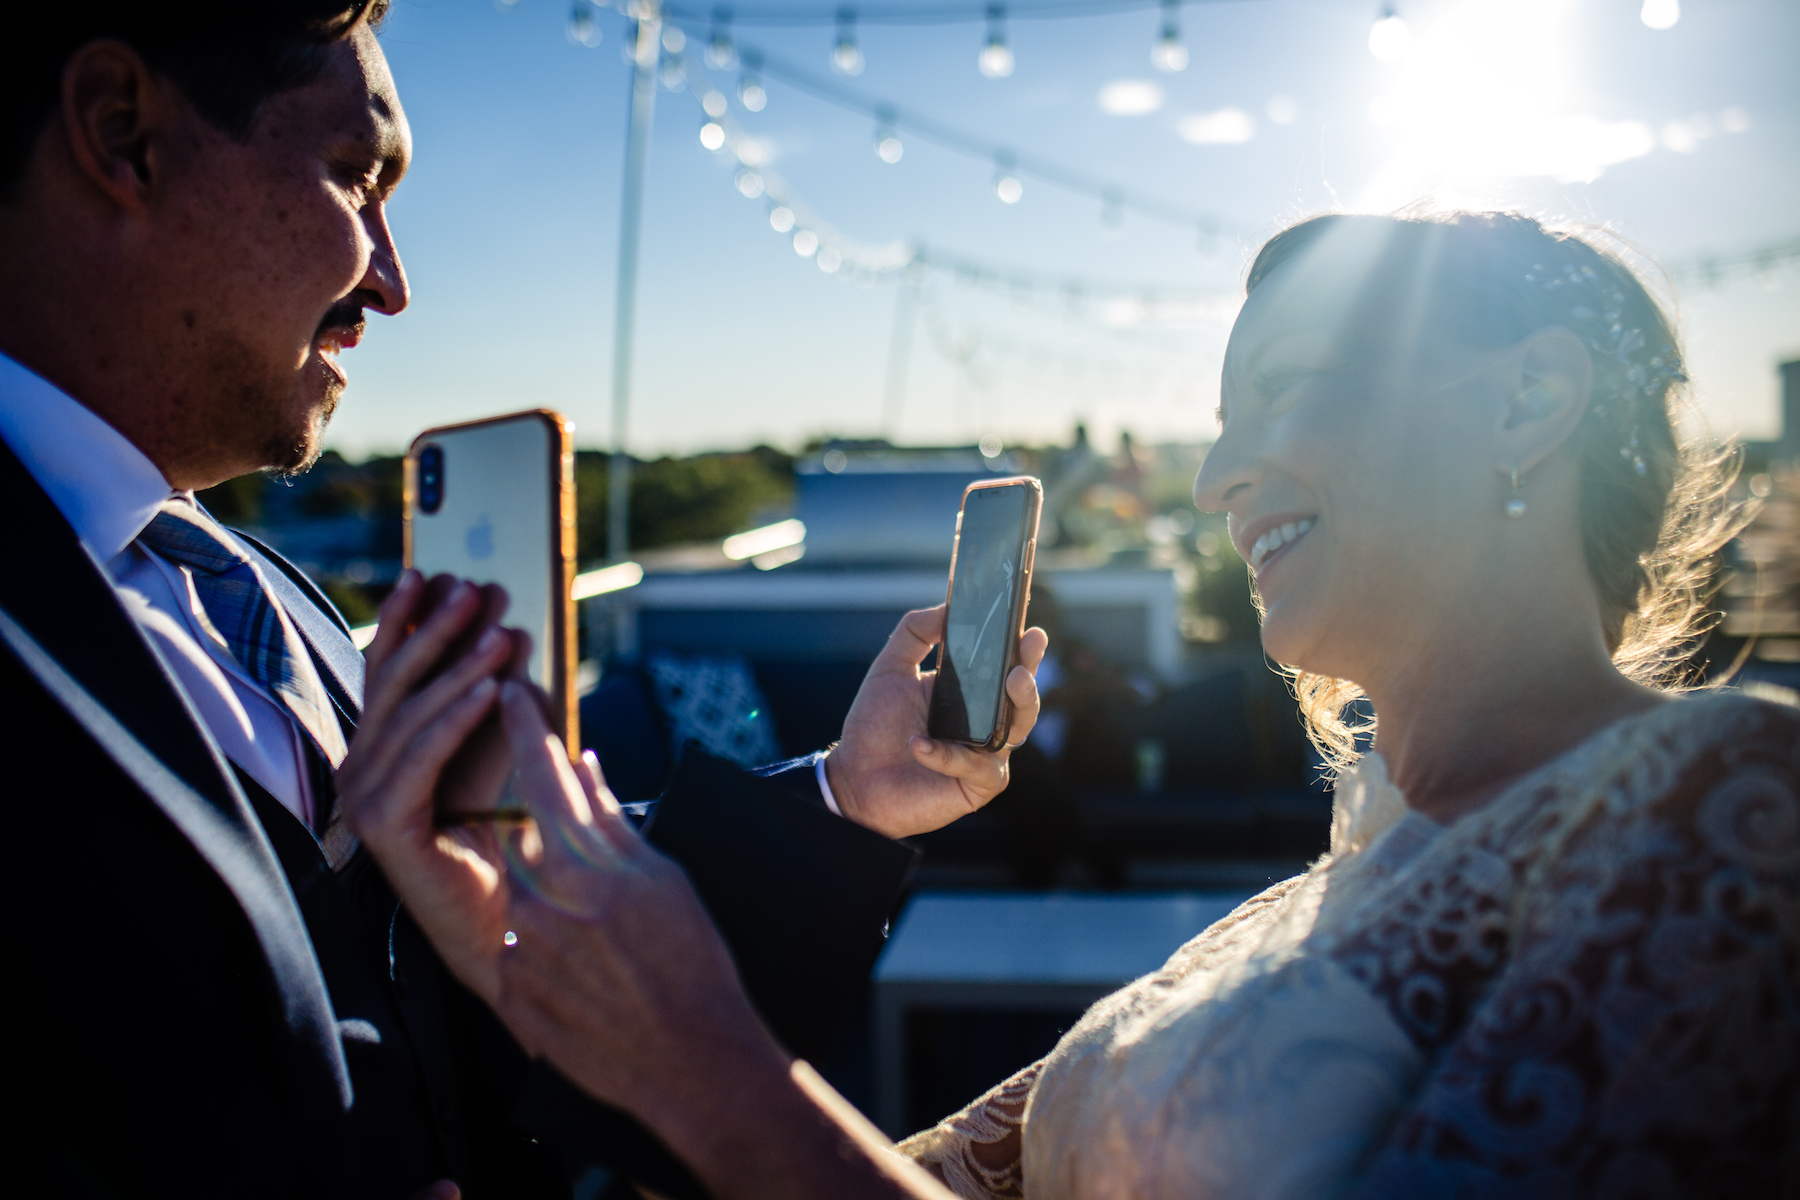 Capitol Hill Washington DC Wedding Image | The bride and groom enjoy video calls with their family members and friends